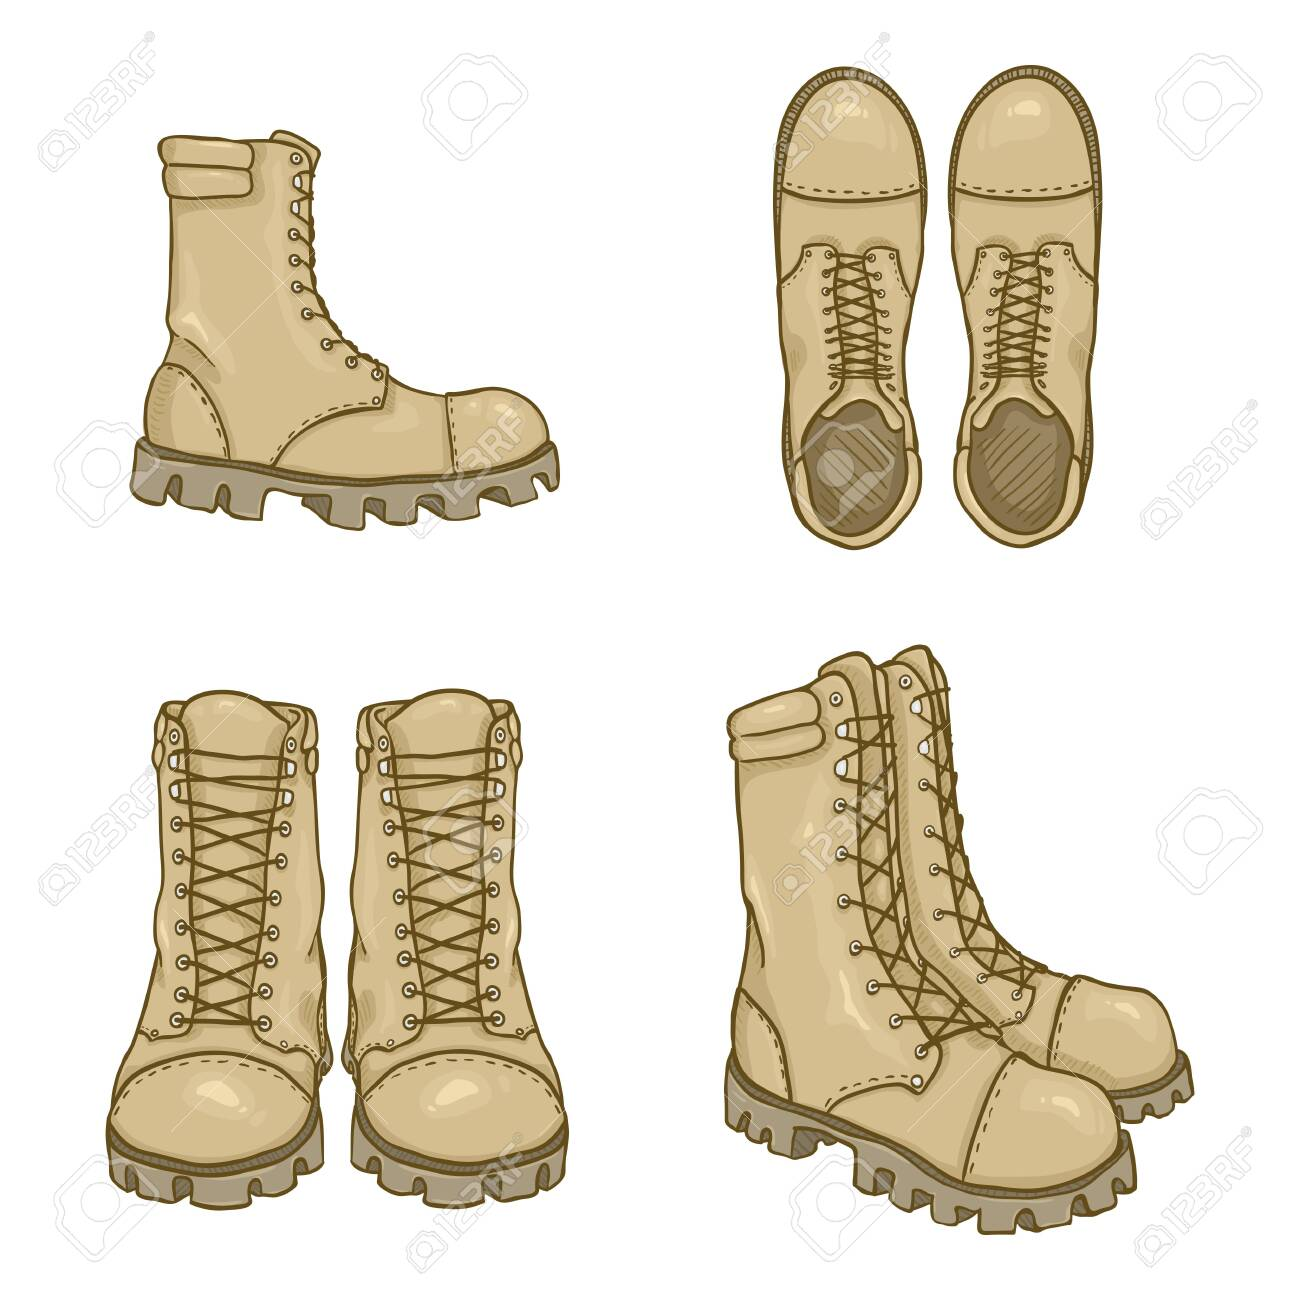 Vector Set of Cartoon Beige Army Boots Illustration - 137247422